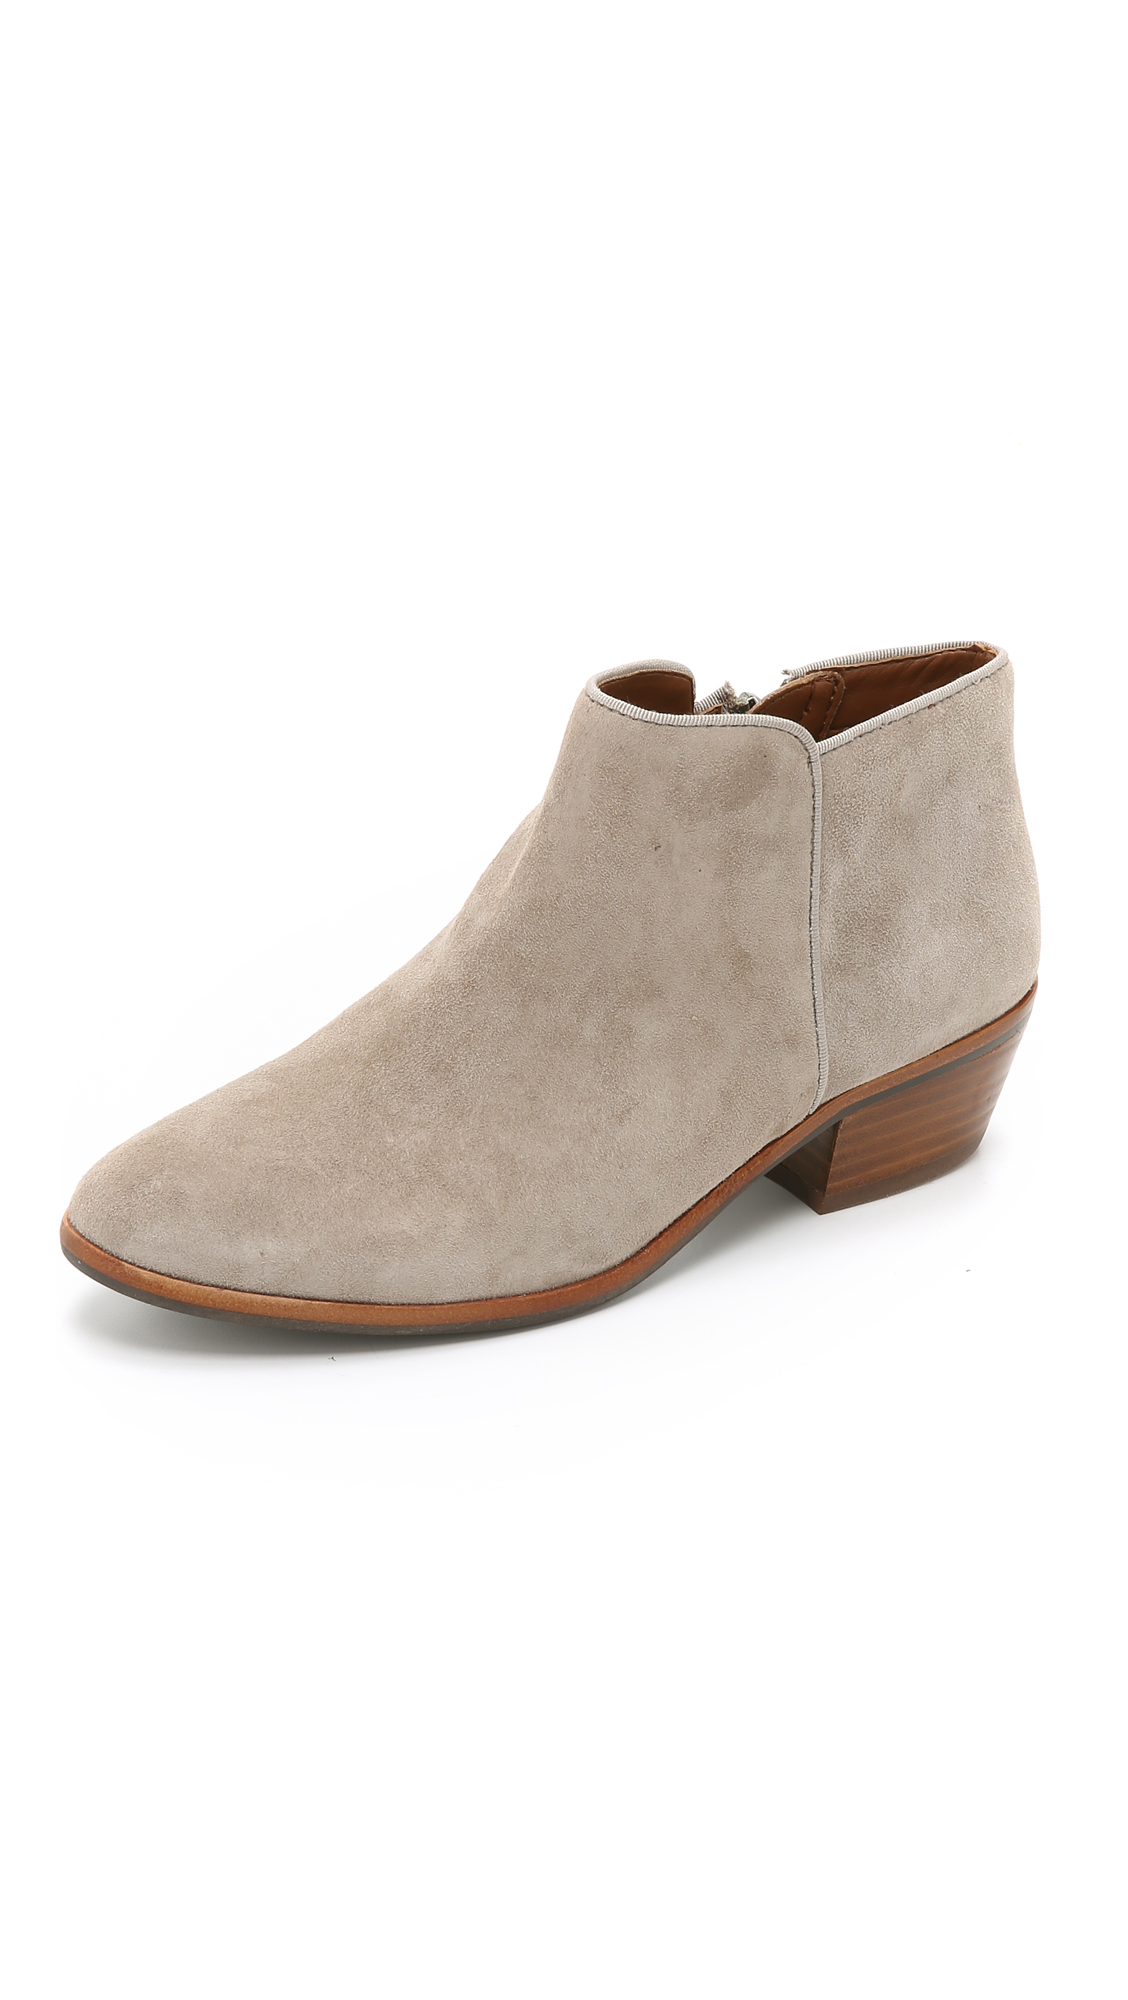 d3fbfed692d11 Sam Edelman Petty Suede Booties SAVE UP TO 30% Use Code MAINEVENT16 ...